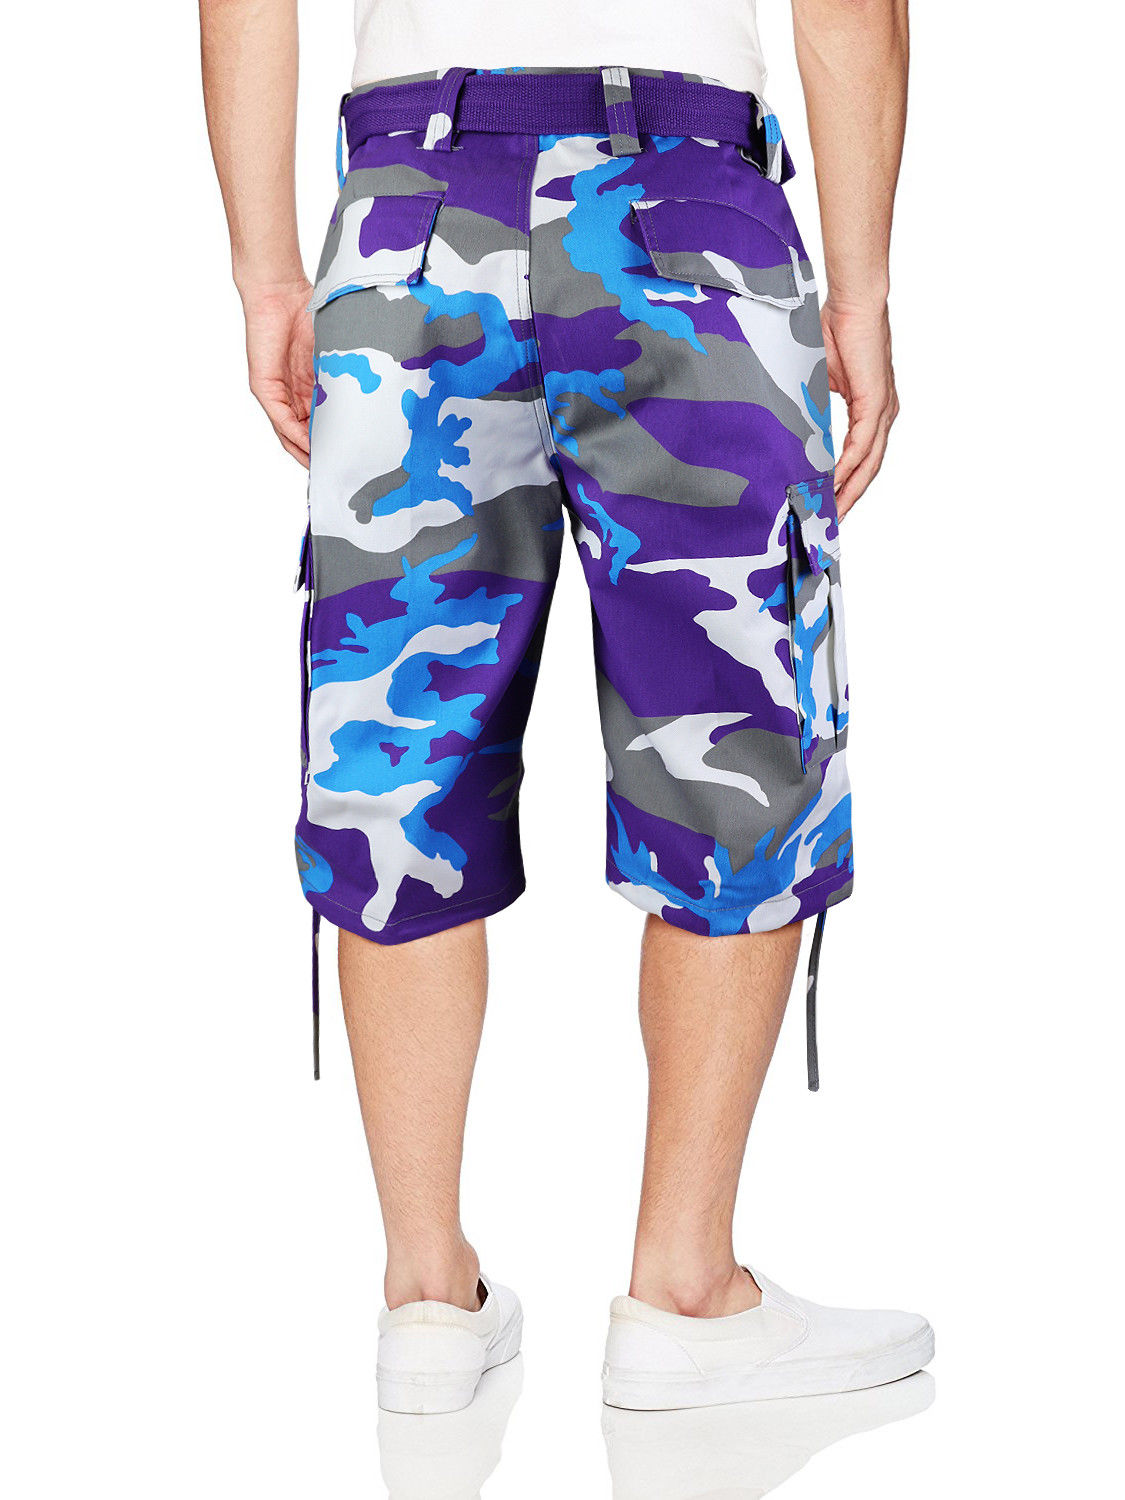 Men-039-s-Tactical-Military-Army-Camo-Camouflage-Slim-Fit-Cargo-Shorts-With-Belt thumbnail 23